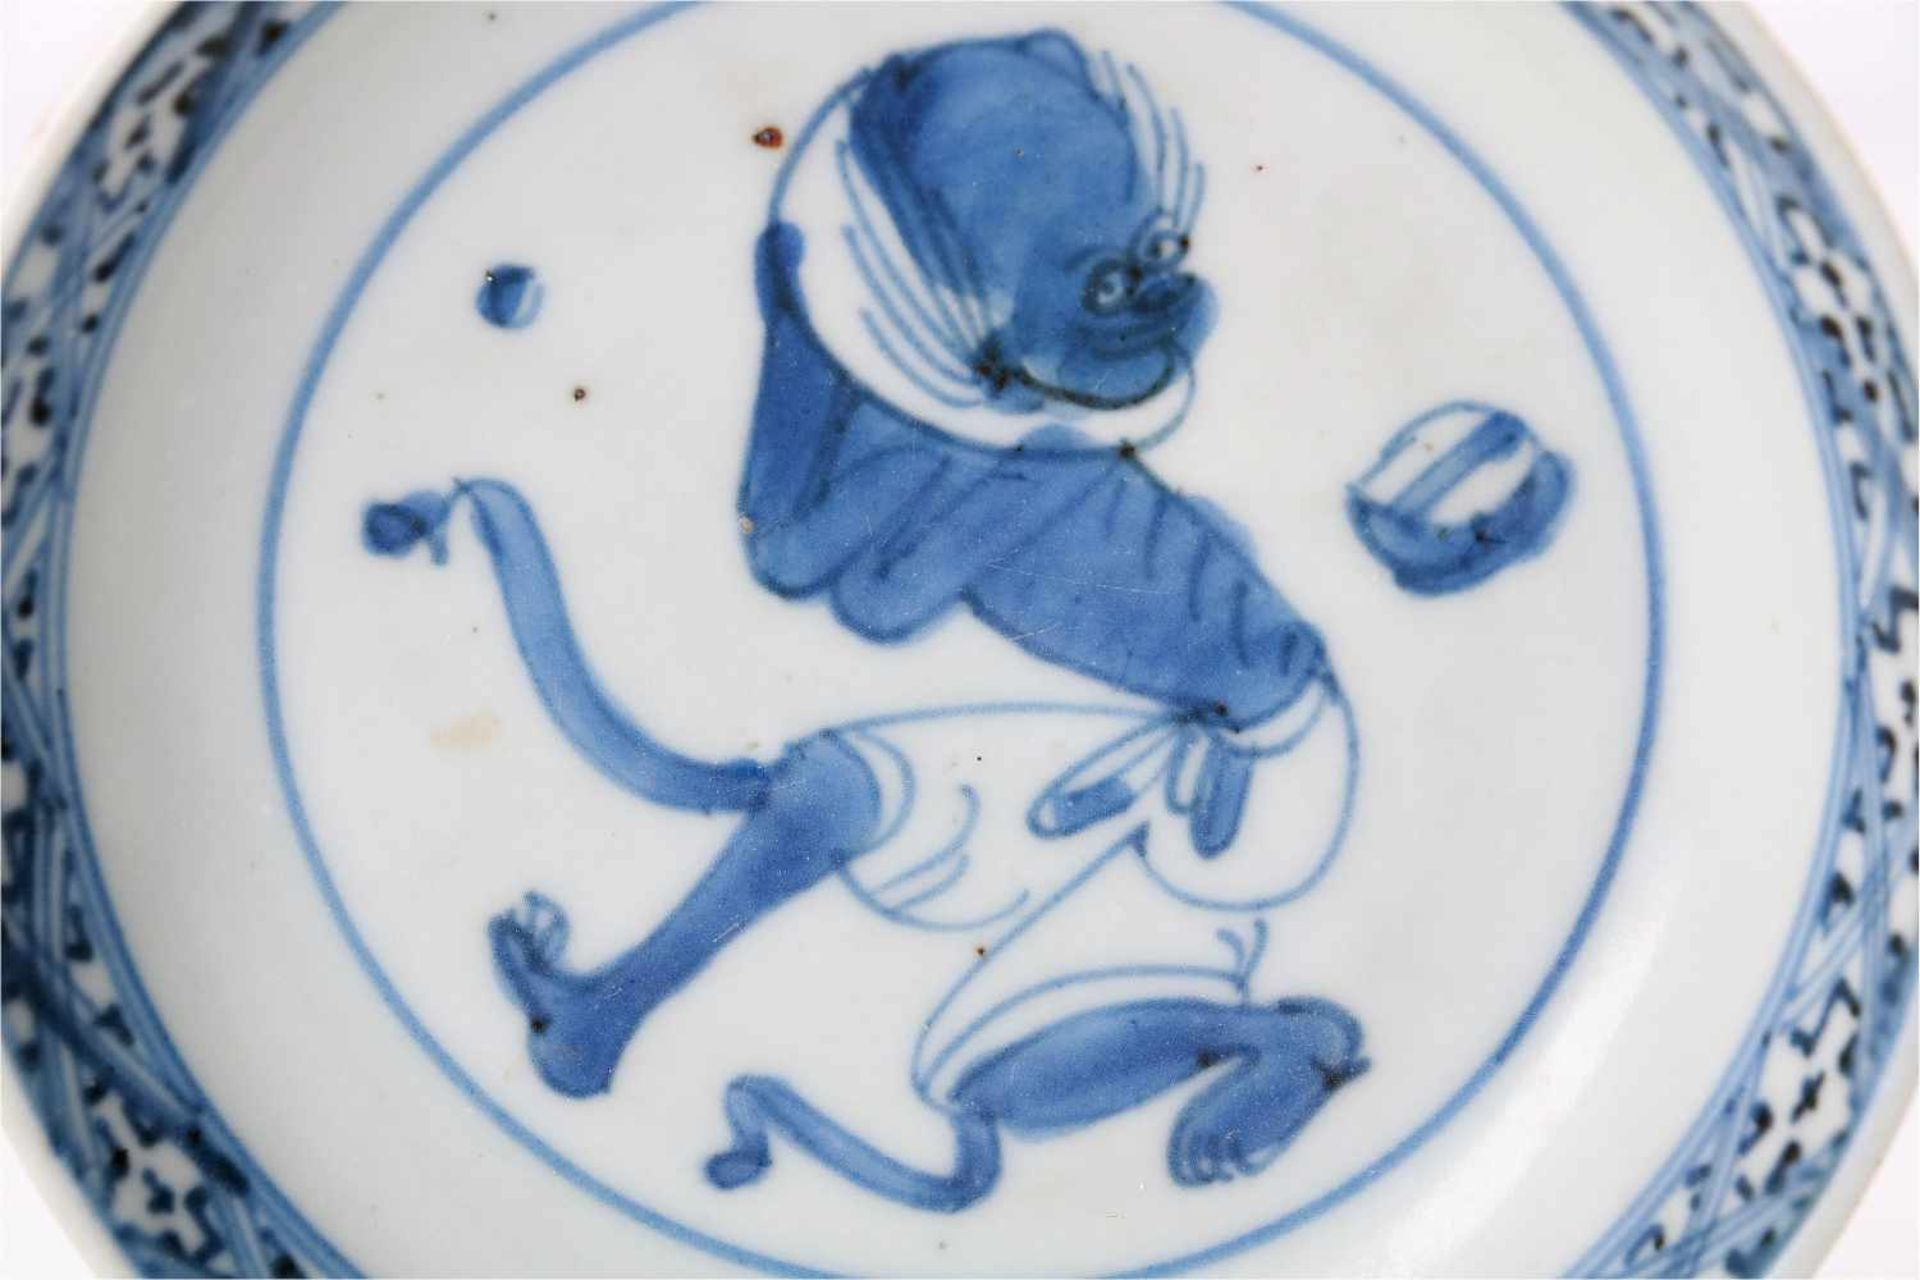 Two blue and white porcelain saucers, decorated with a dragon and a mythical creature. Marked. - Bild 3 aus 4